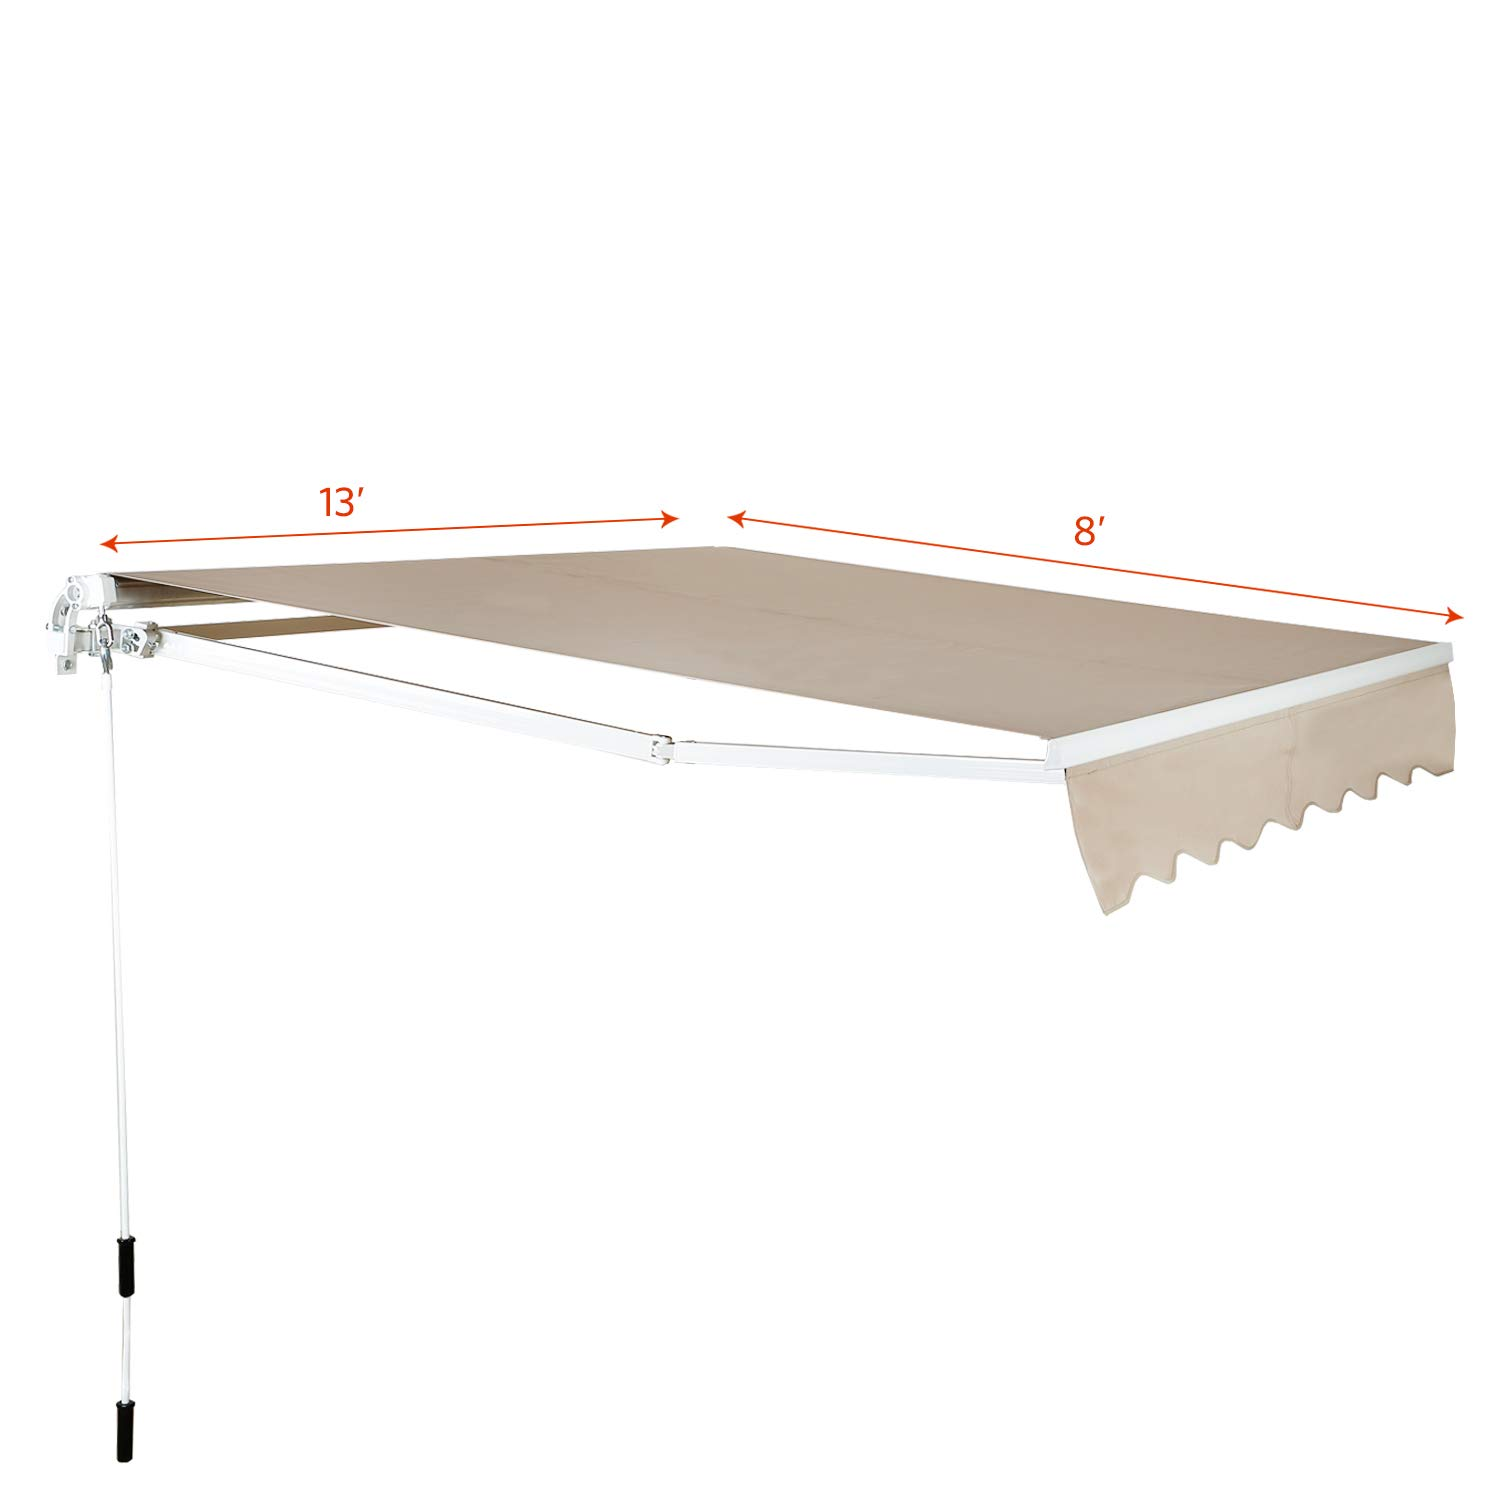 Aclumsy 13×8 Feet Retractable Patio Sun Shade Awning Cover w UV- Water-Resistant Fabric, Aluminum Frame, Crank Handle – – Beige